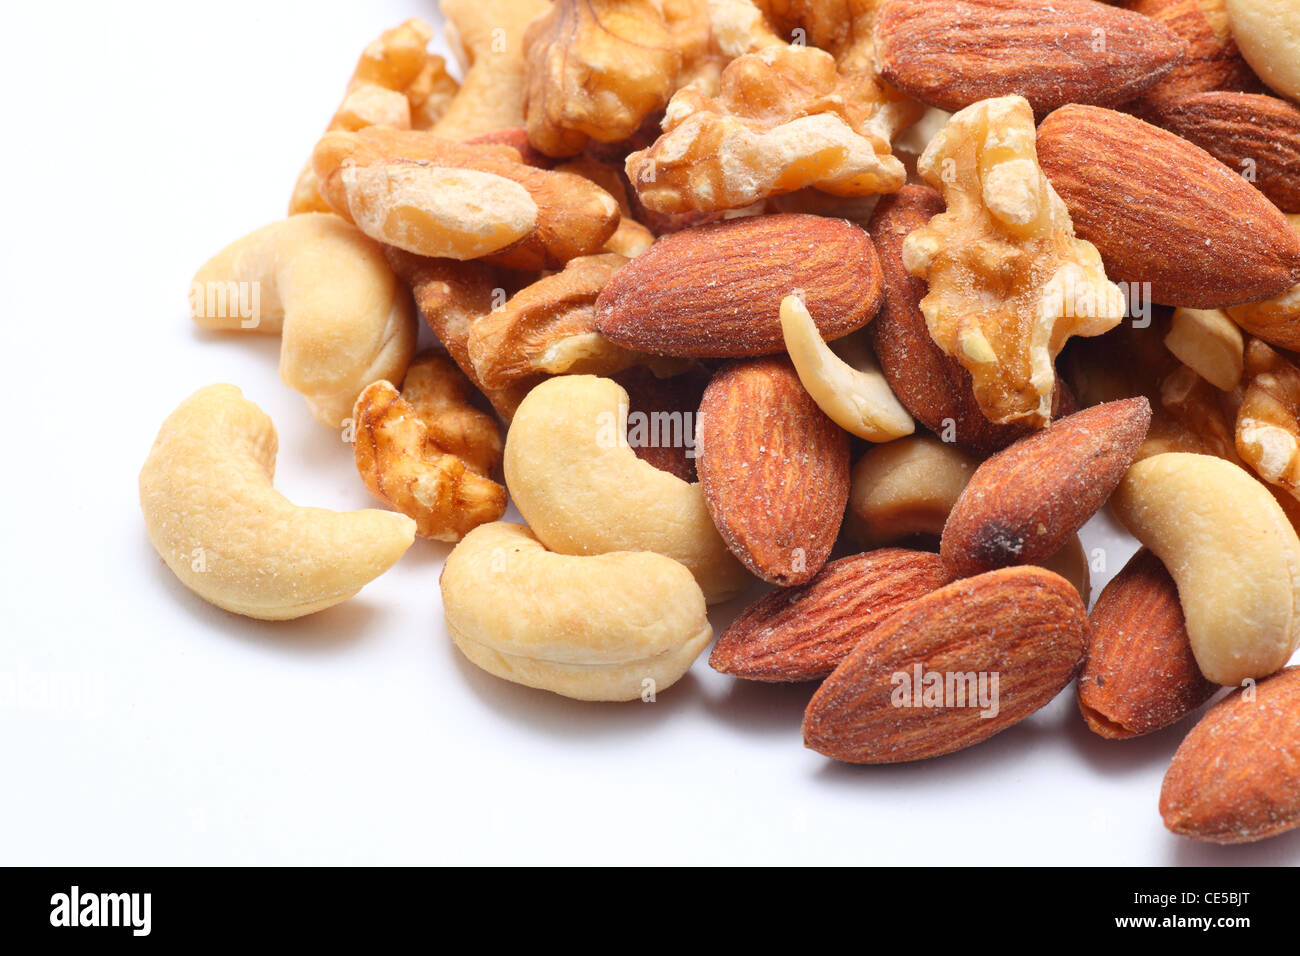 Mixed nuts on white background - Stock Image